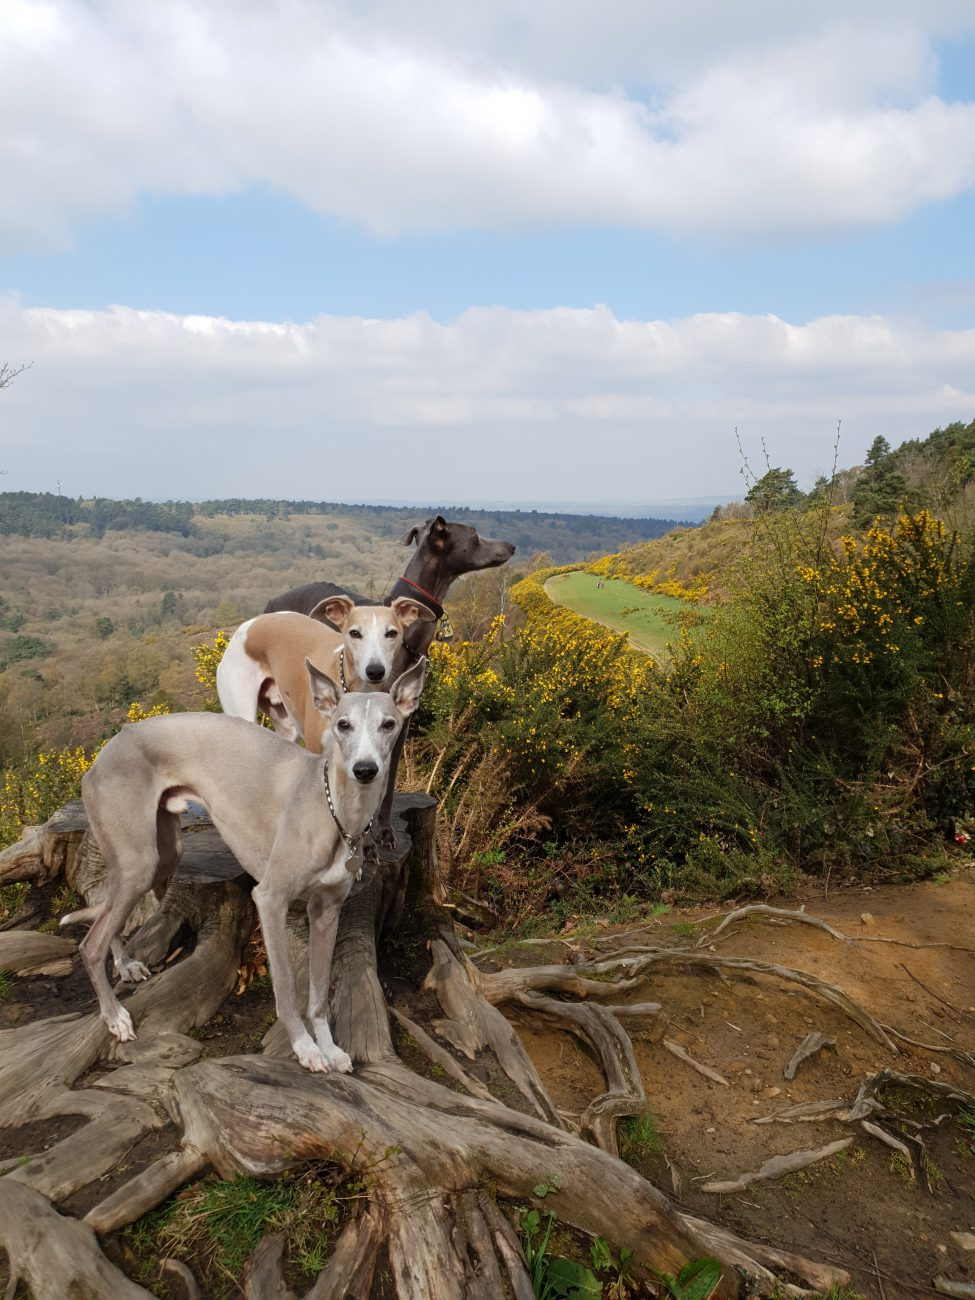 Three whippets on a tree stump. An example of how the wait command can help you take better photographs of your dog.